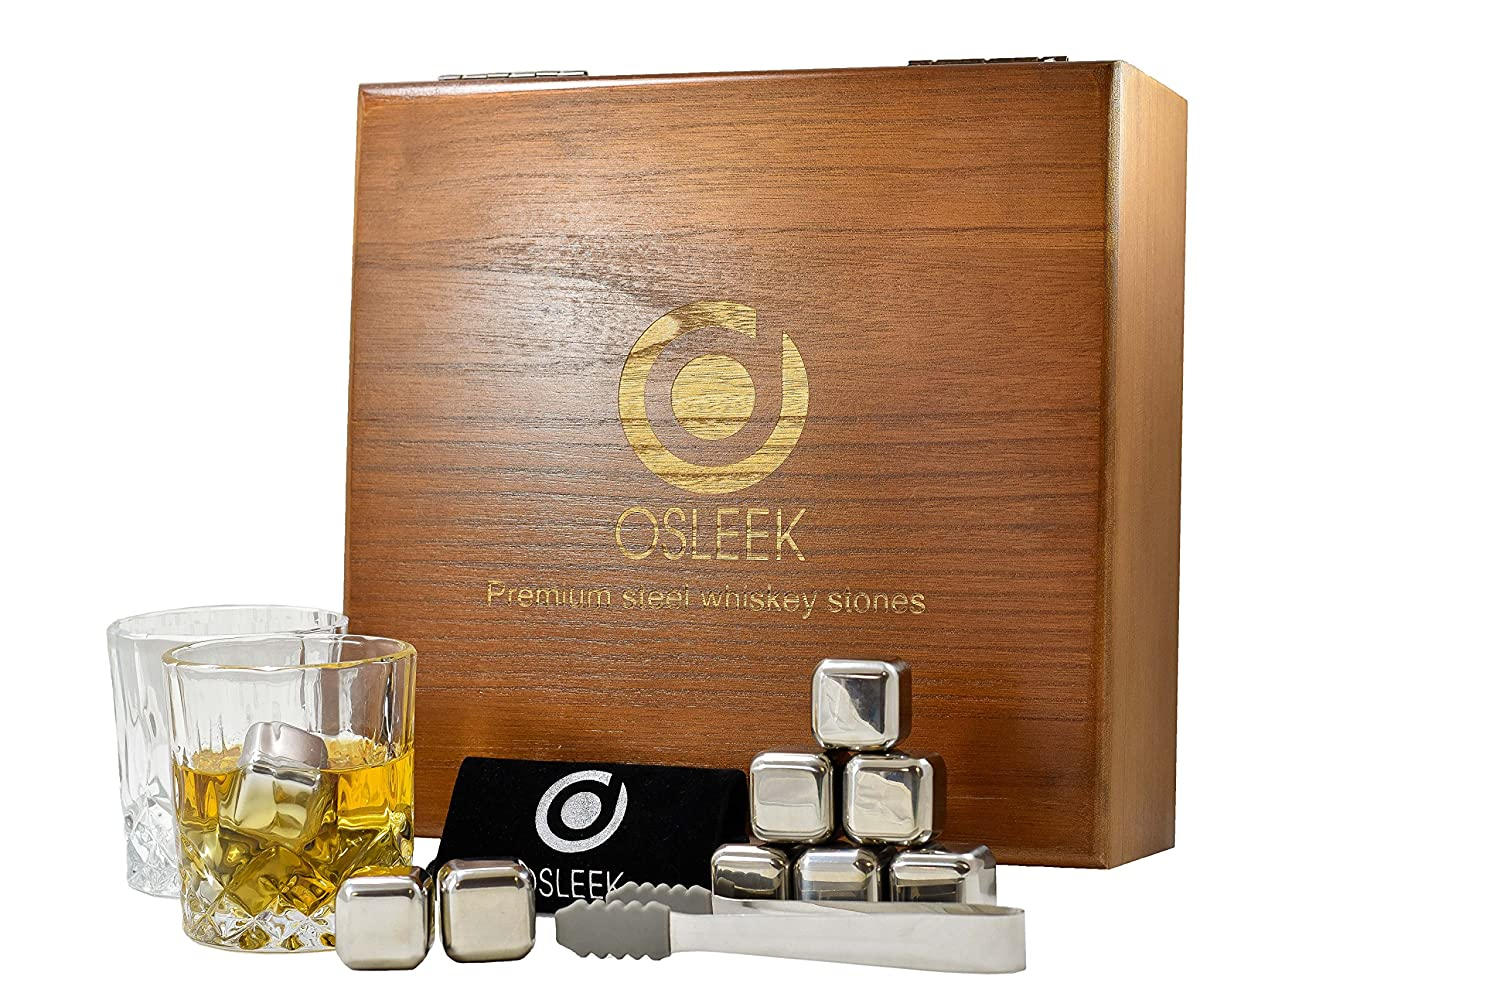 Whiskey Stones - Gift Set of 8 Stainless Steel Chilling Rocks, 2 Large Glasses, Tong, Velvet Freezing Bag And Luxury Wood Handmade Display Box | Osleek Business Class Edition